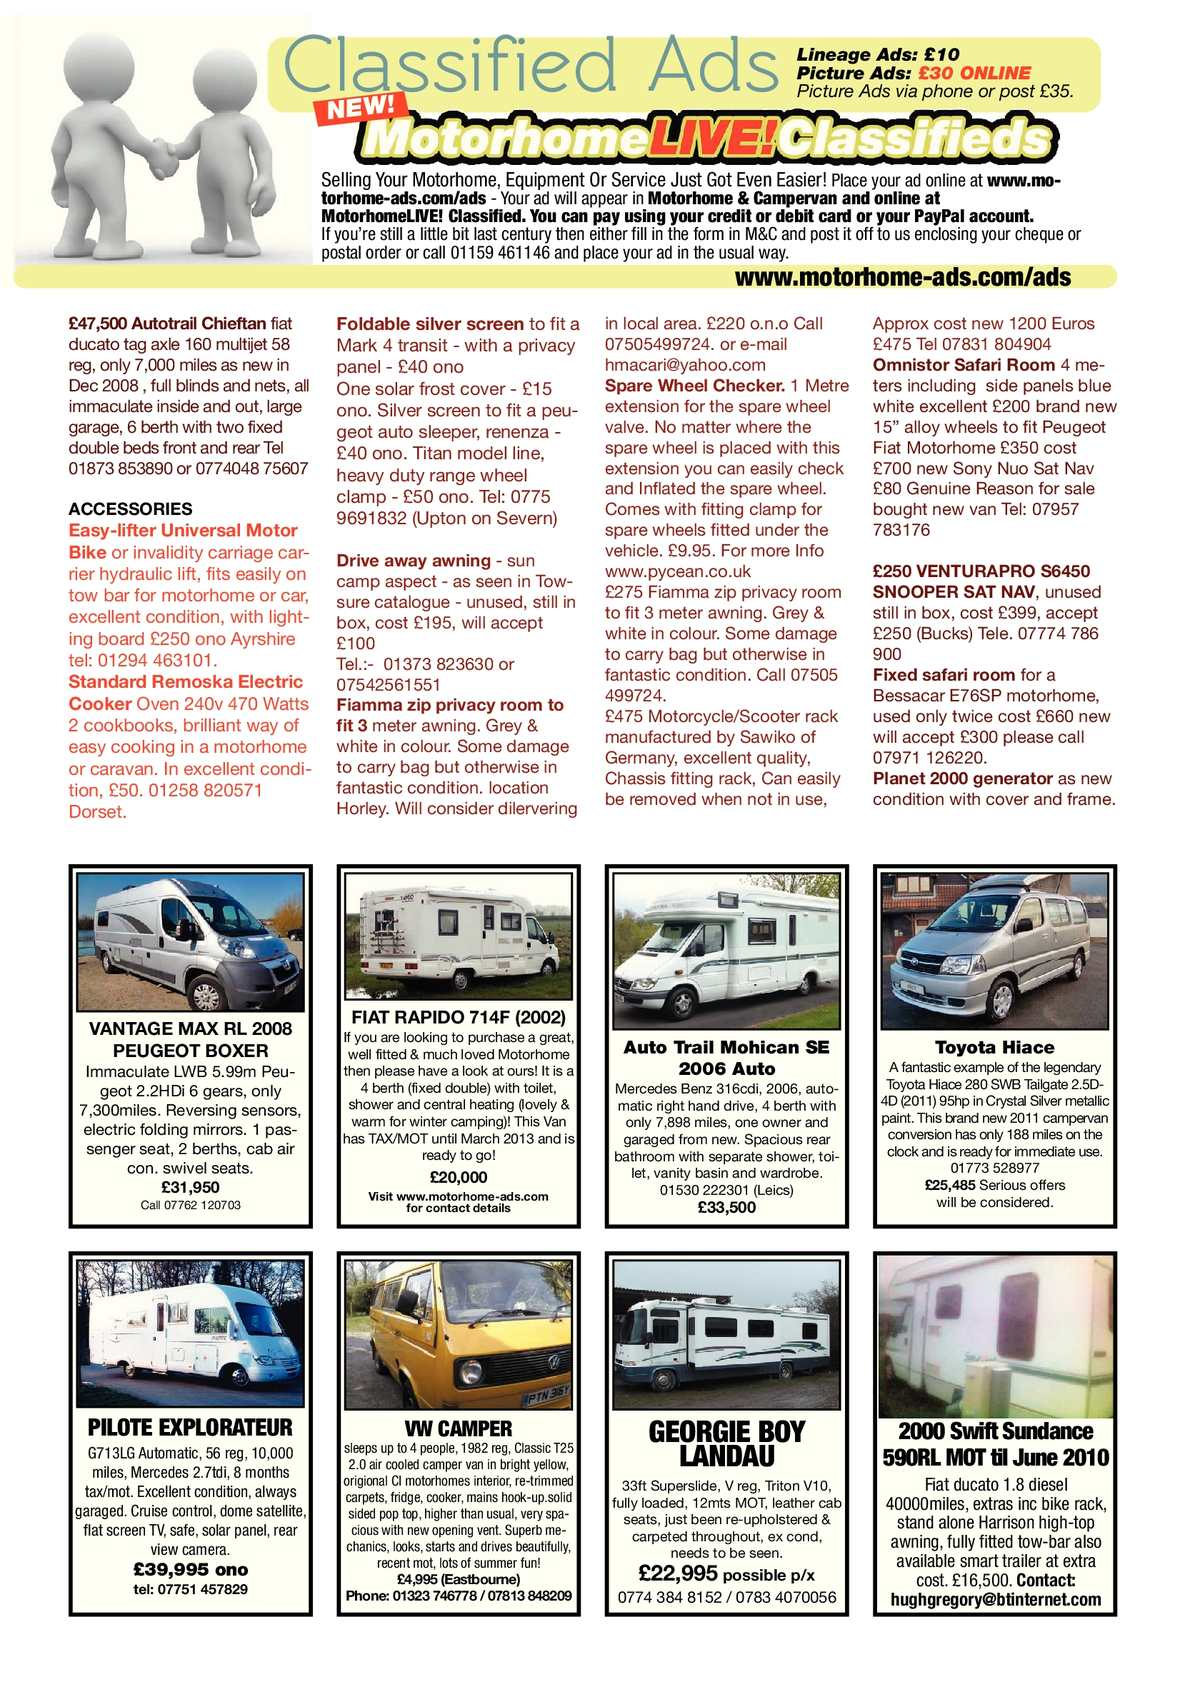 May 2013 Motorhome Campervan Calameo Downloader Georgie Boy Fuel Filter Location Page 92